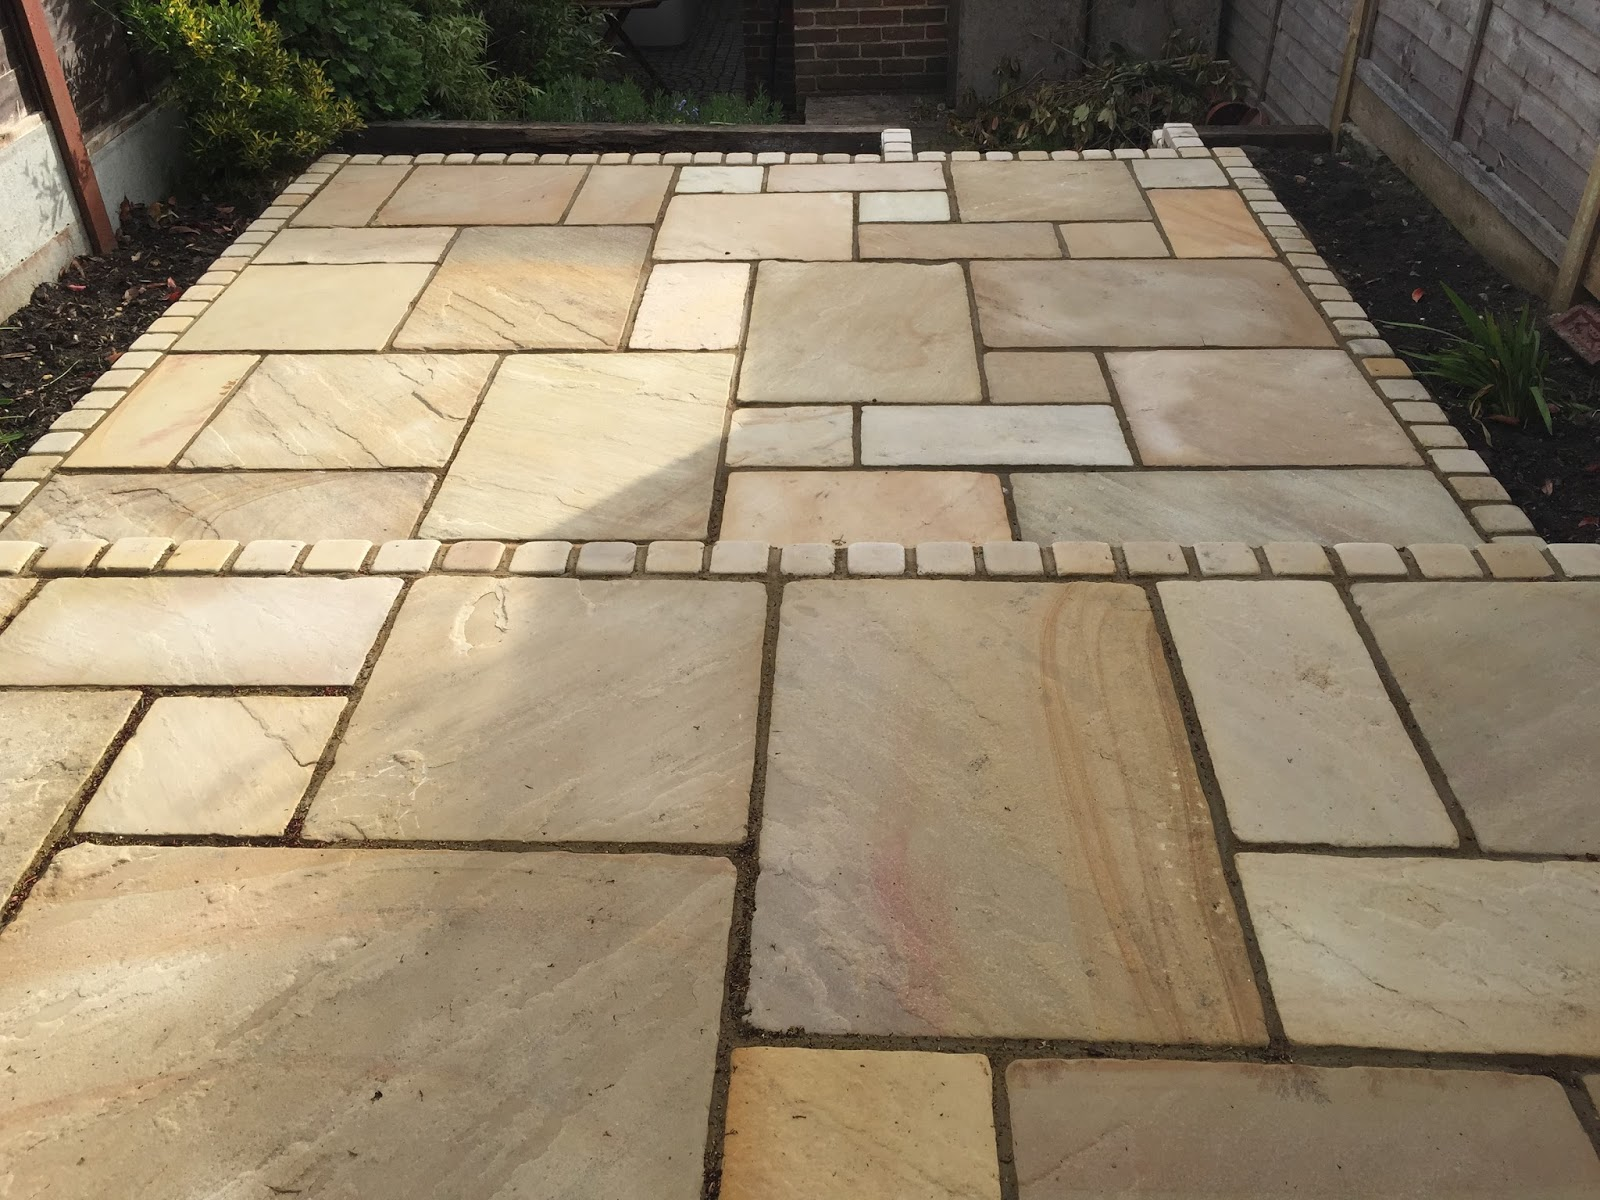 Granite Stone Sandstone : To tumble or not a natural stone paving